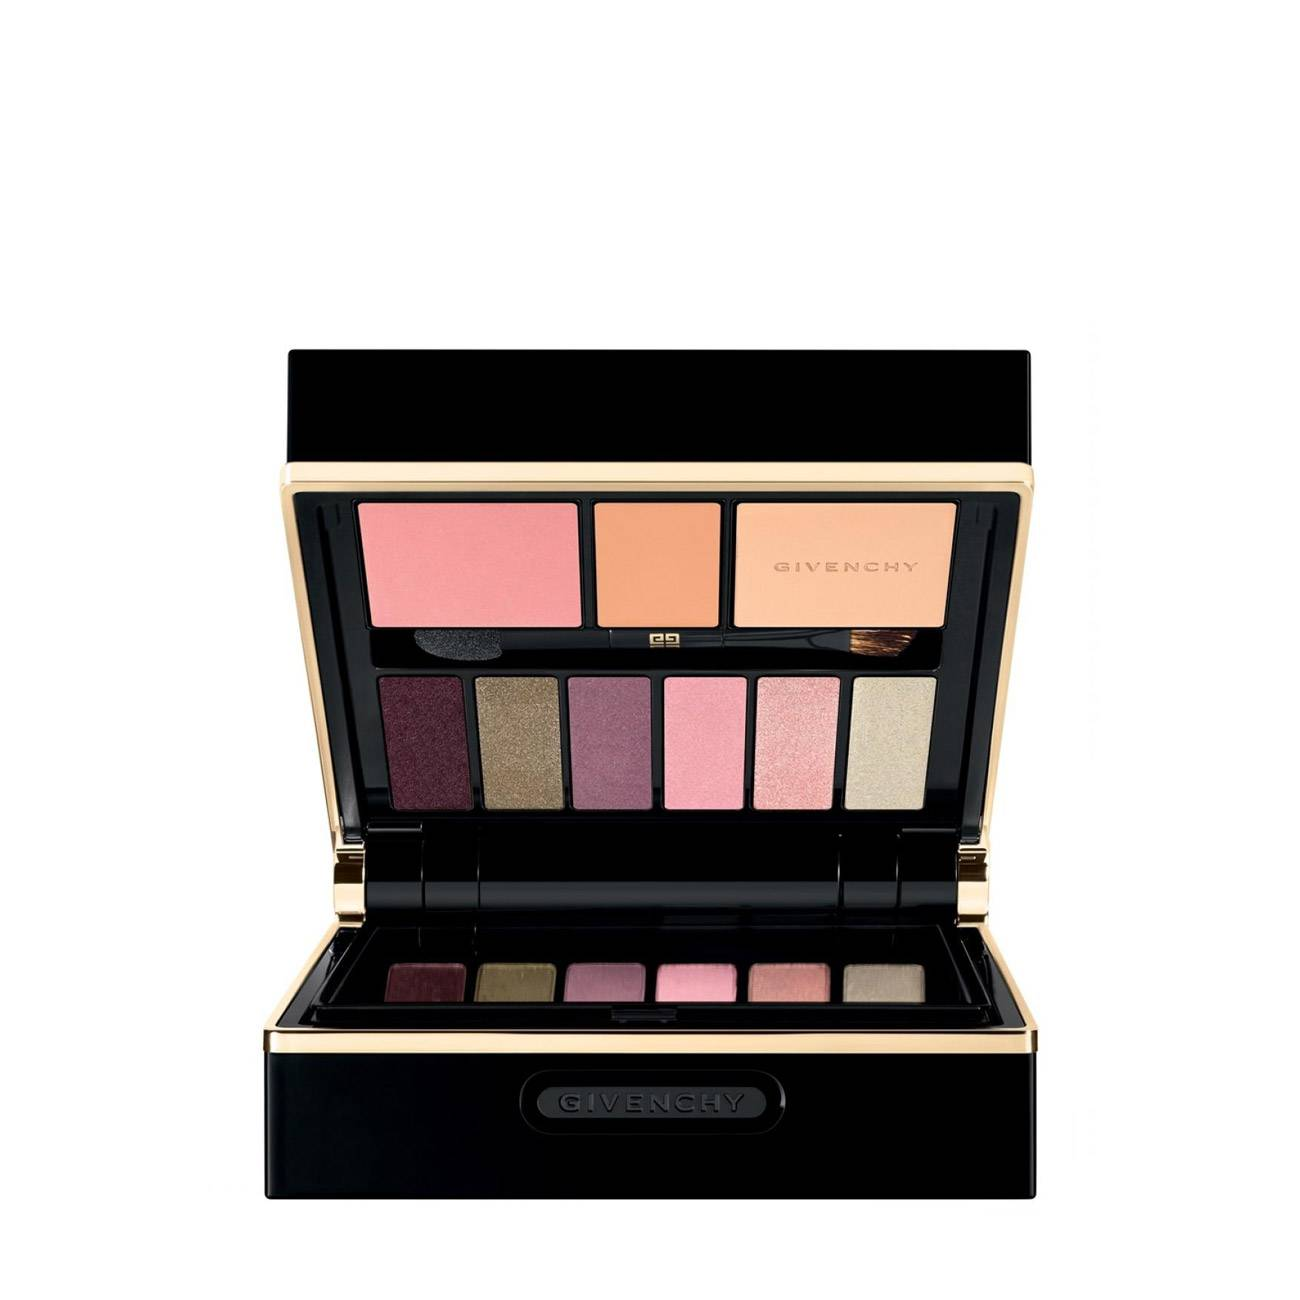 TEINT COUTURE PALETTE SET